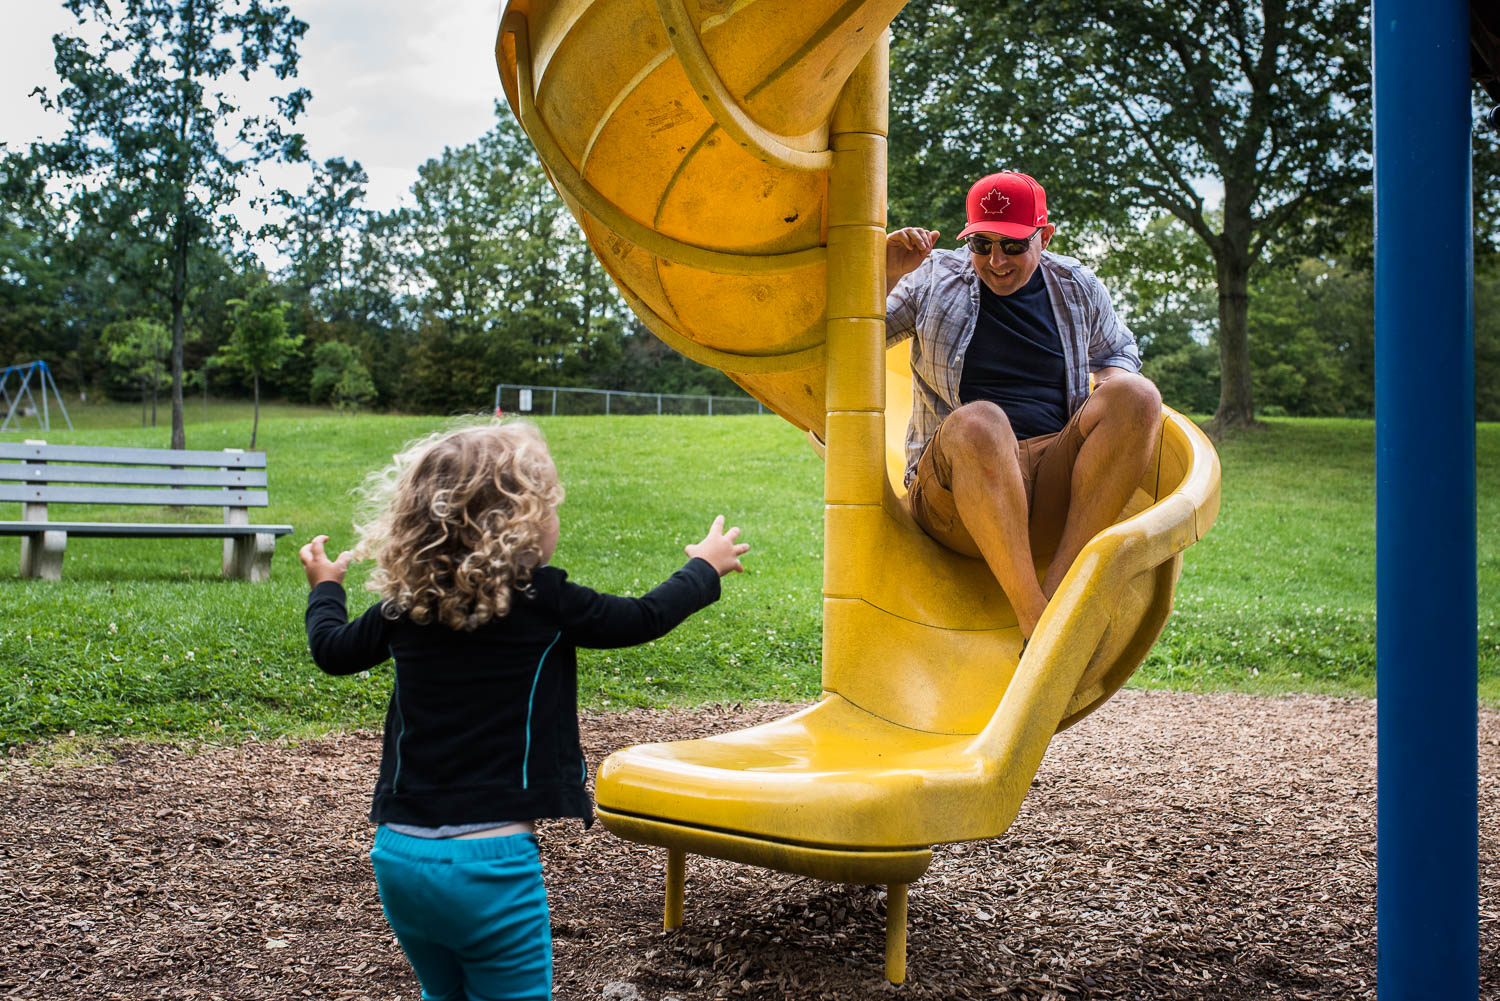 A toddler girl with curly hair at a park running to the bottom of a slide to catch her dad in a red hat who is sliding down the slide